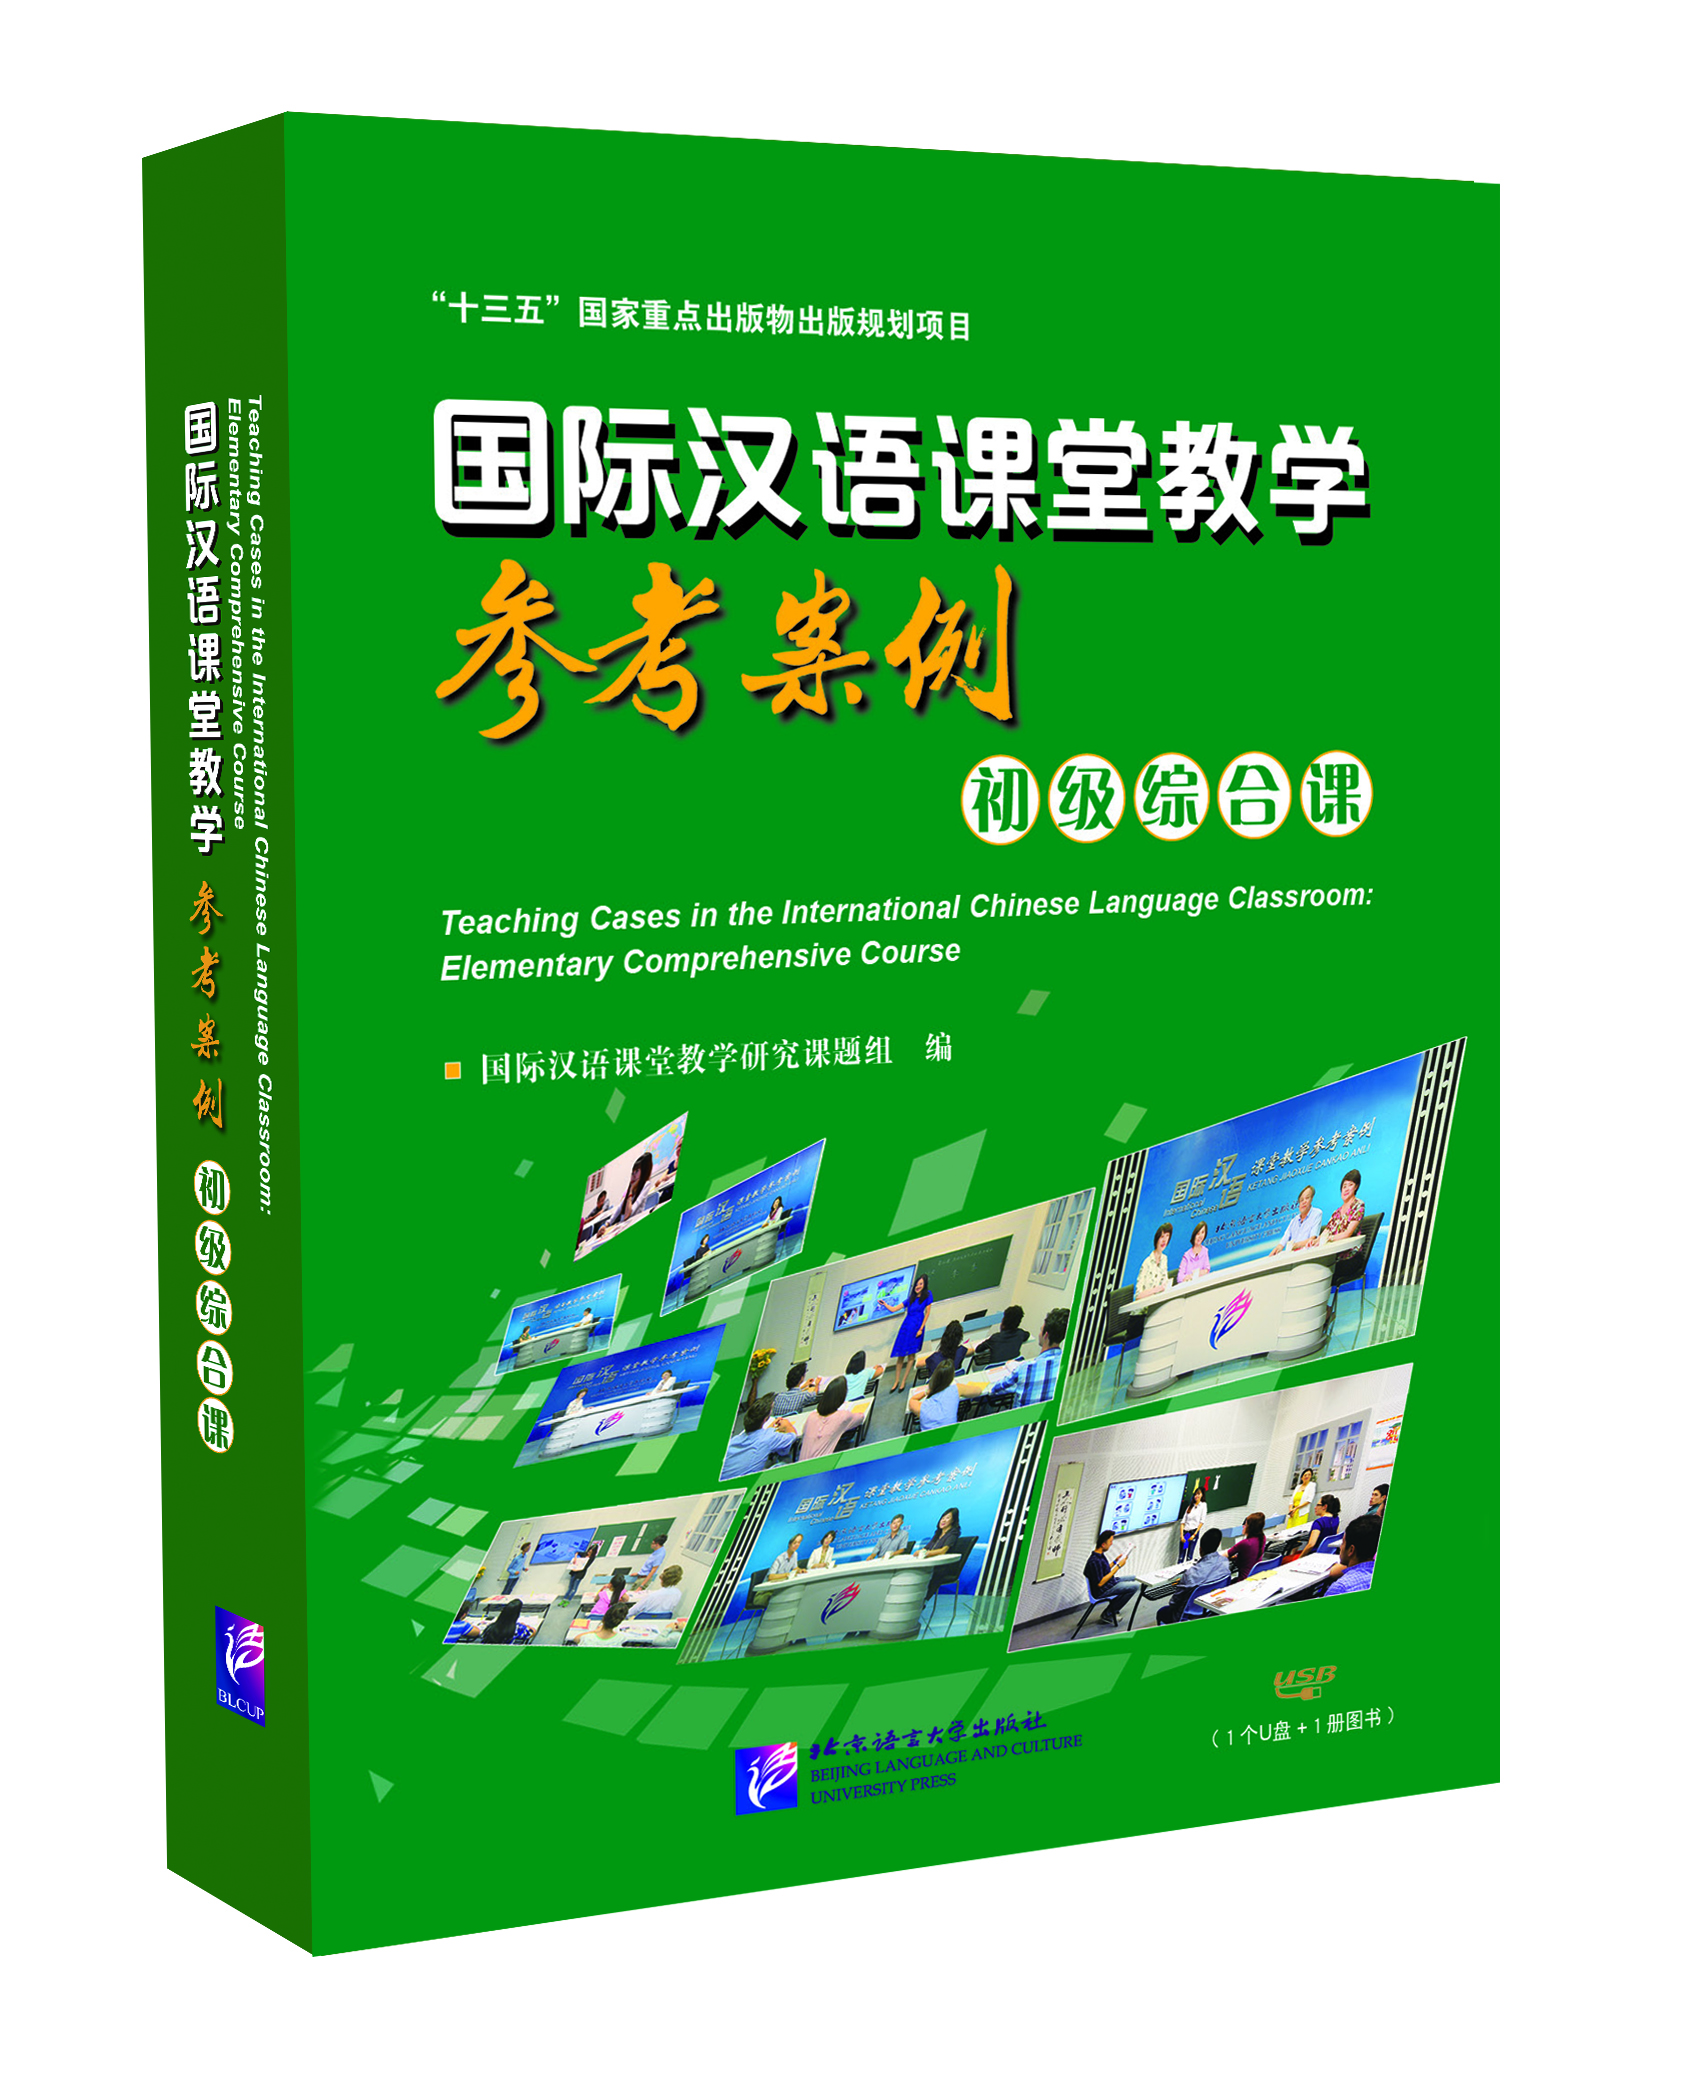 Teaching Cases in the International Chinese Language Classroom: Elementary Comprehensive Course + Rich Media 国际汉语课堂教学参考案例 初级综合课(含1书+1U盘)